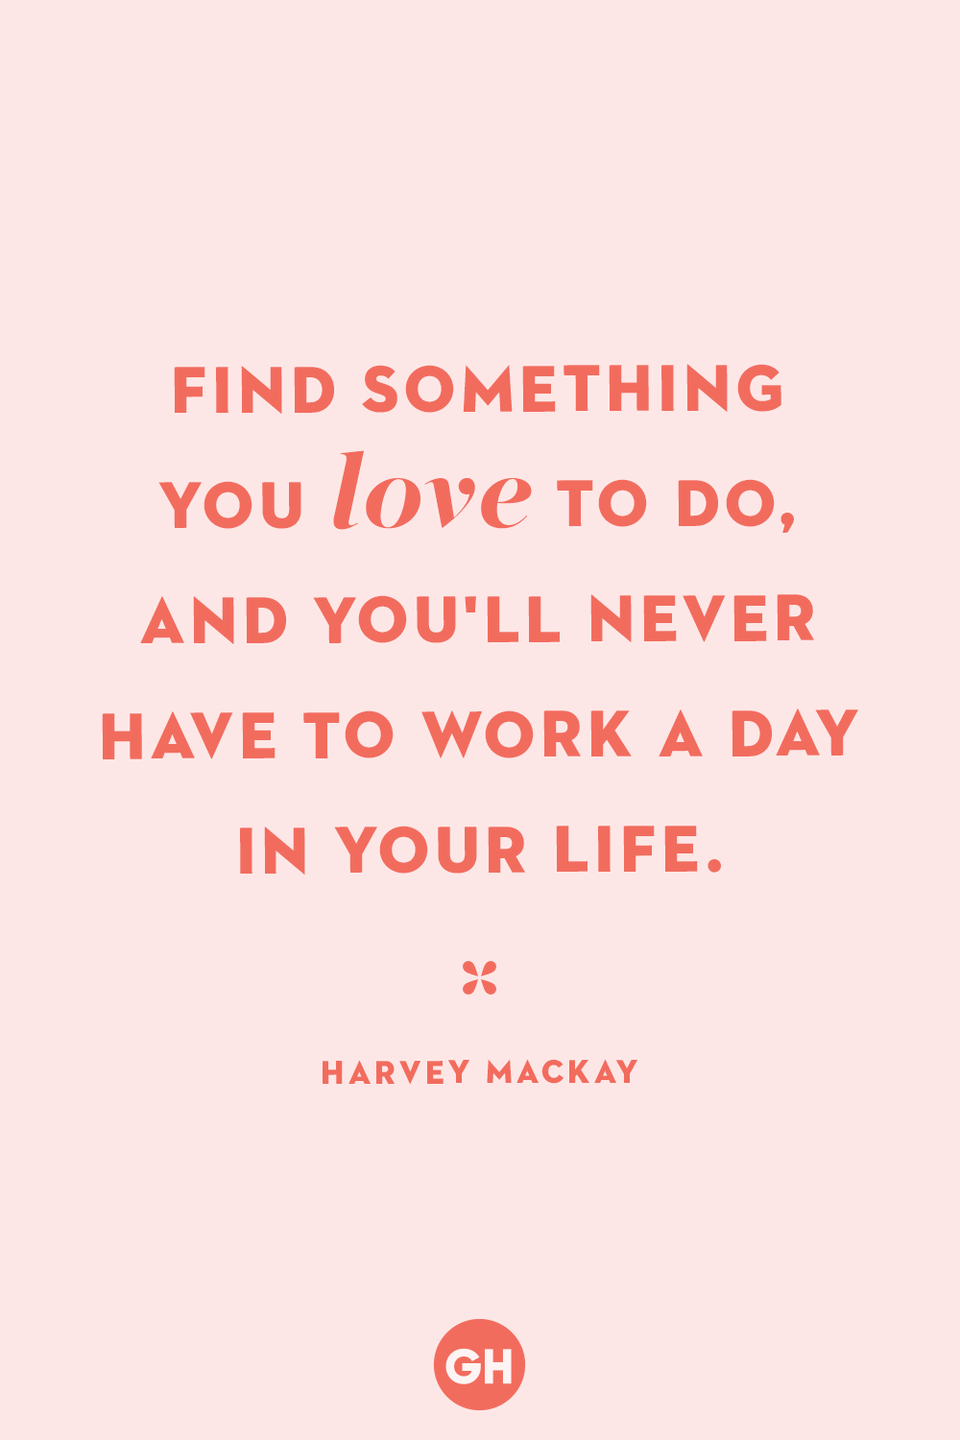 <p>Find something you love to do, and you'll never have to work a day in your life. </p>